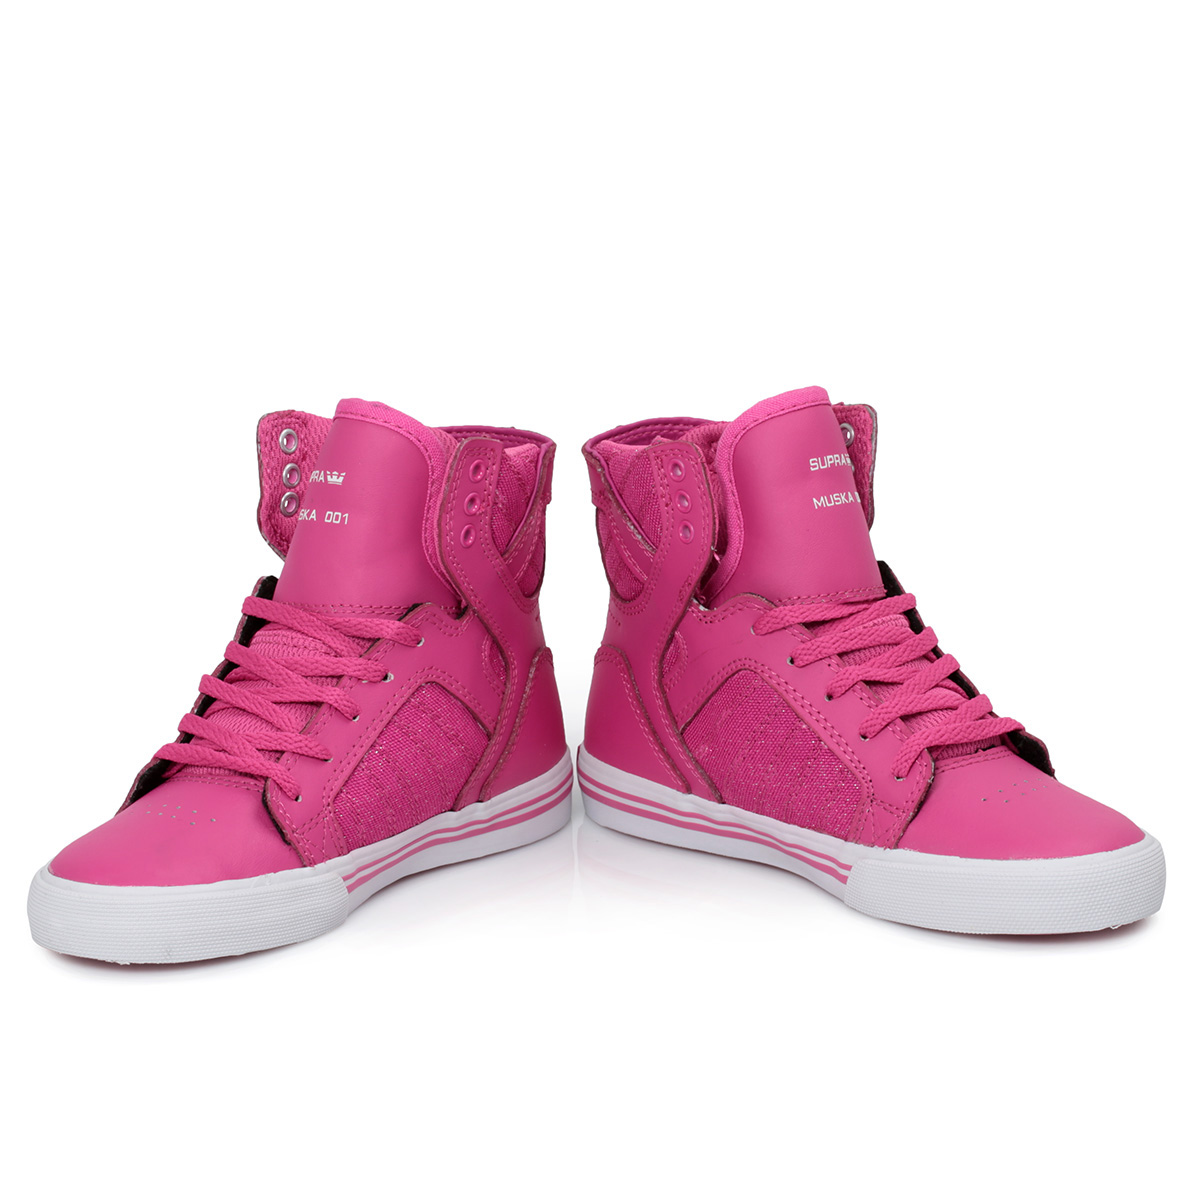 Enjoy free shipping and easy returns every day at Kohl's. Find great deals on High Tops Kids Shoes at Kohl's today!